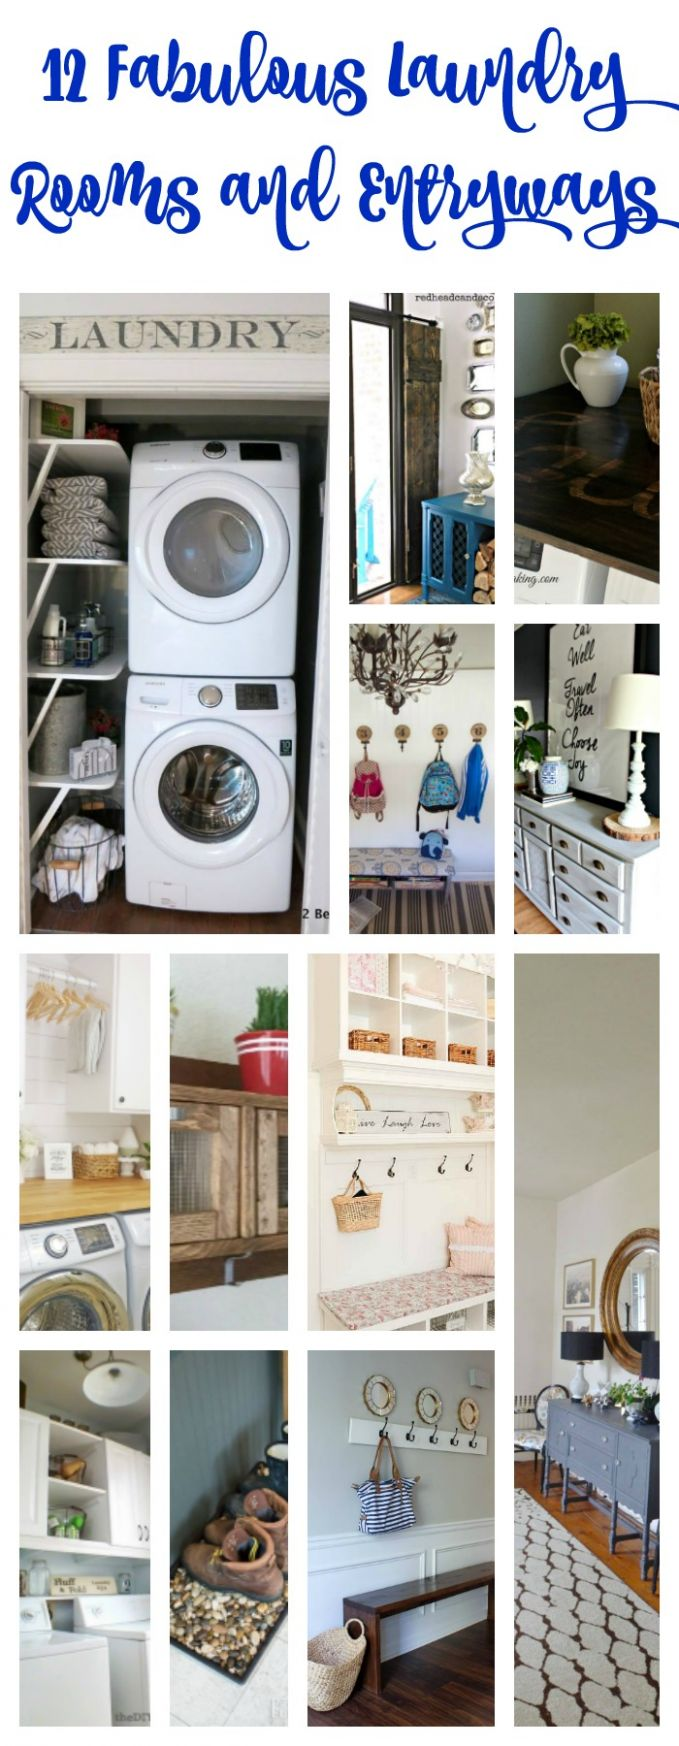 9 Laundry Room and Entry Ideas - DIY Housewives Series - 9 Bees ..